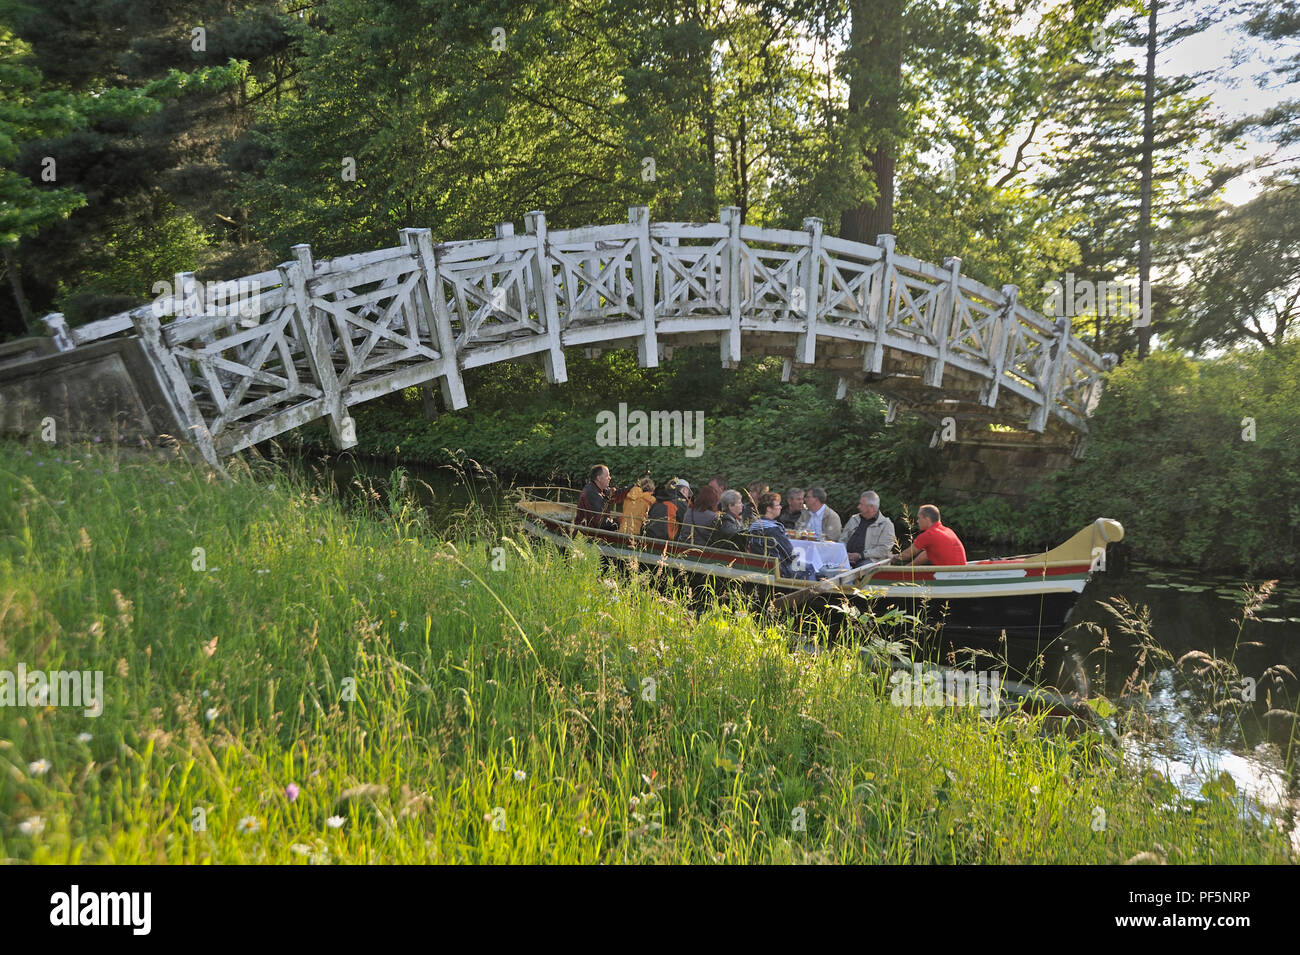 Dessau-Wörlitz Garden Realm, historic parks, White Bridge over the Wolfscanal with gondola, Wörlitz, district Wittenberg, Saxony-Anhalt, Germany, Euro - Stock Image